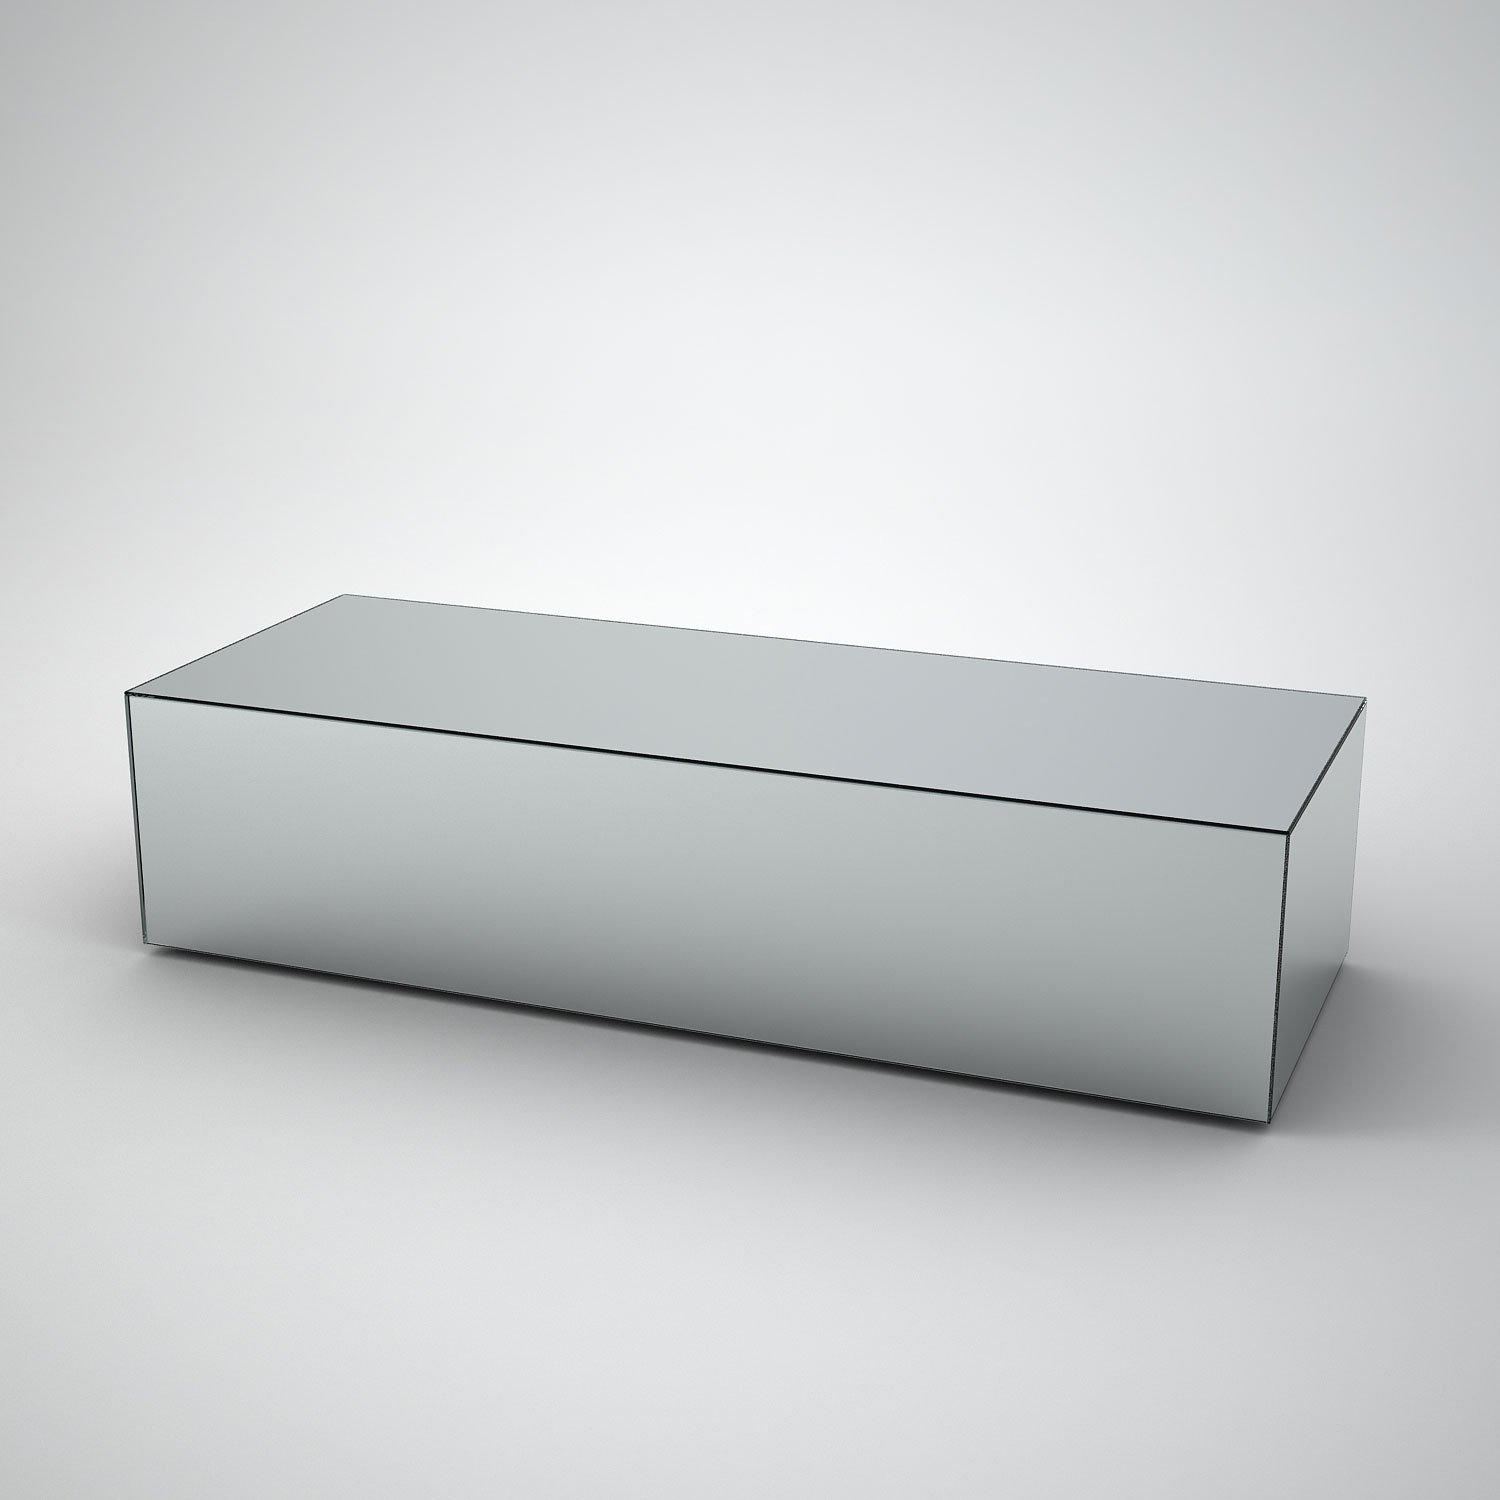 Long Mirrored Coffee Table By MirrorBox